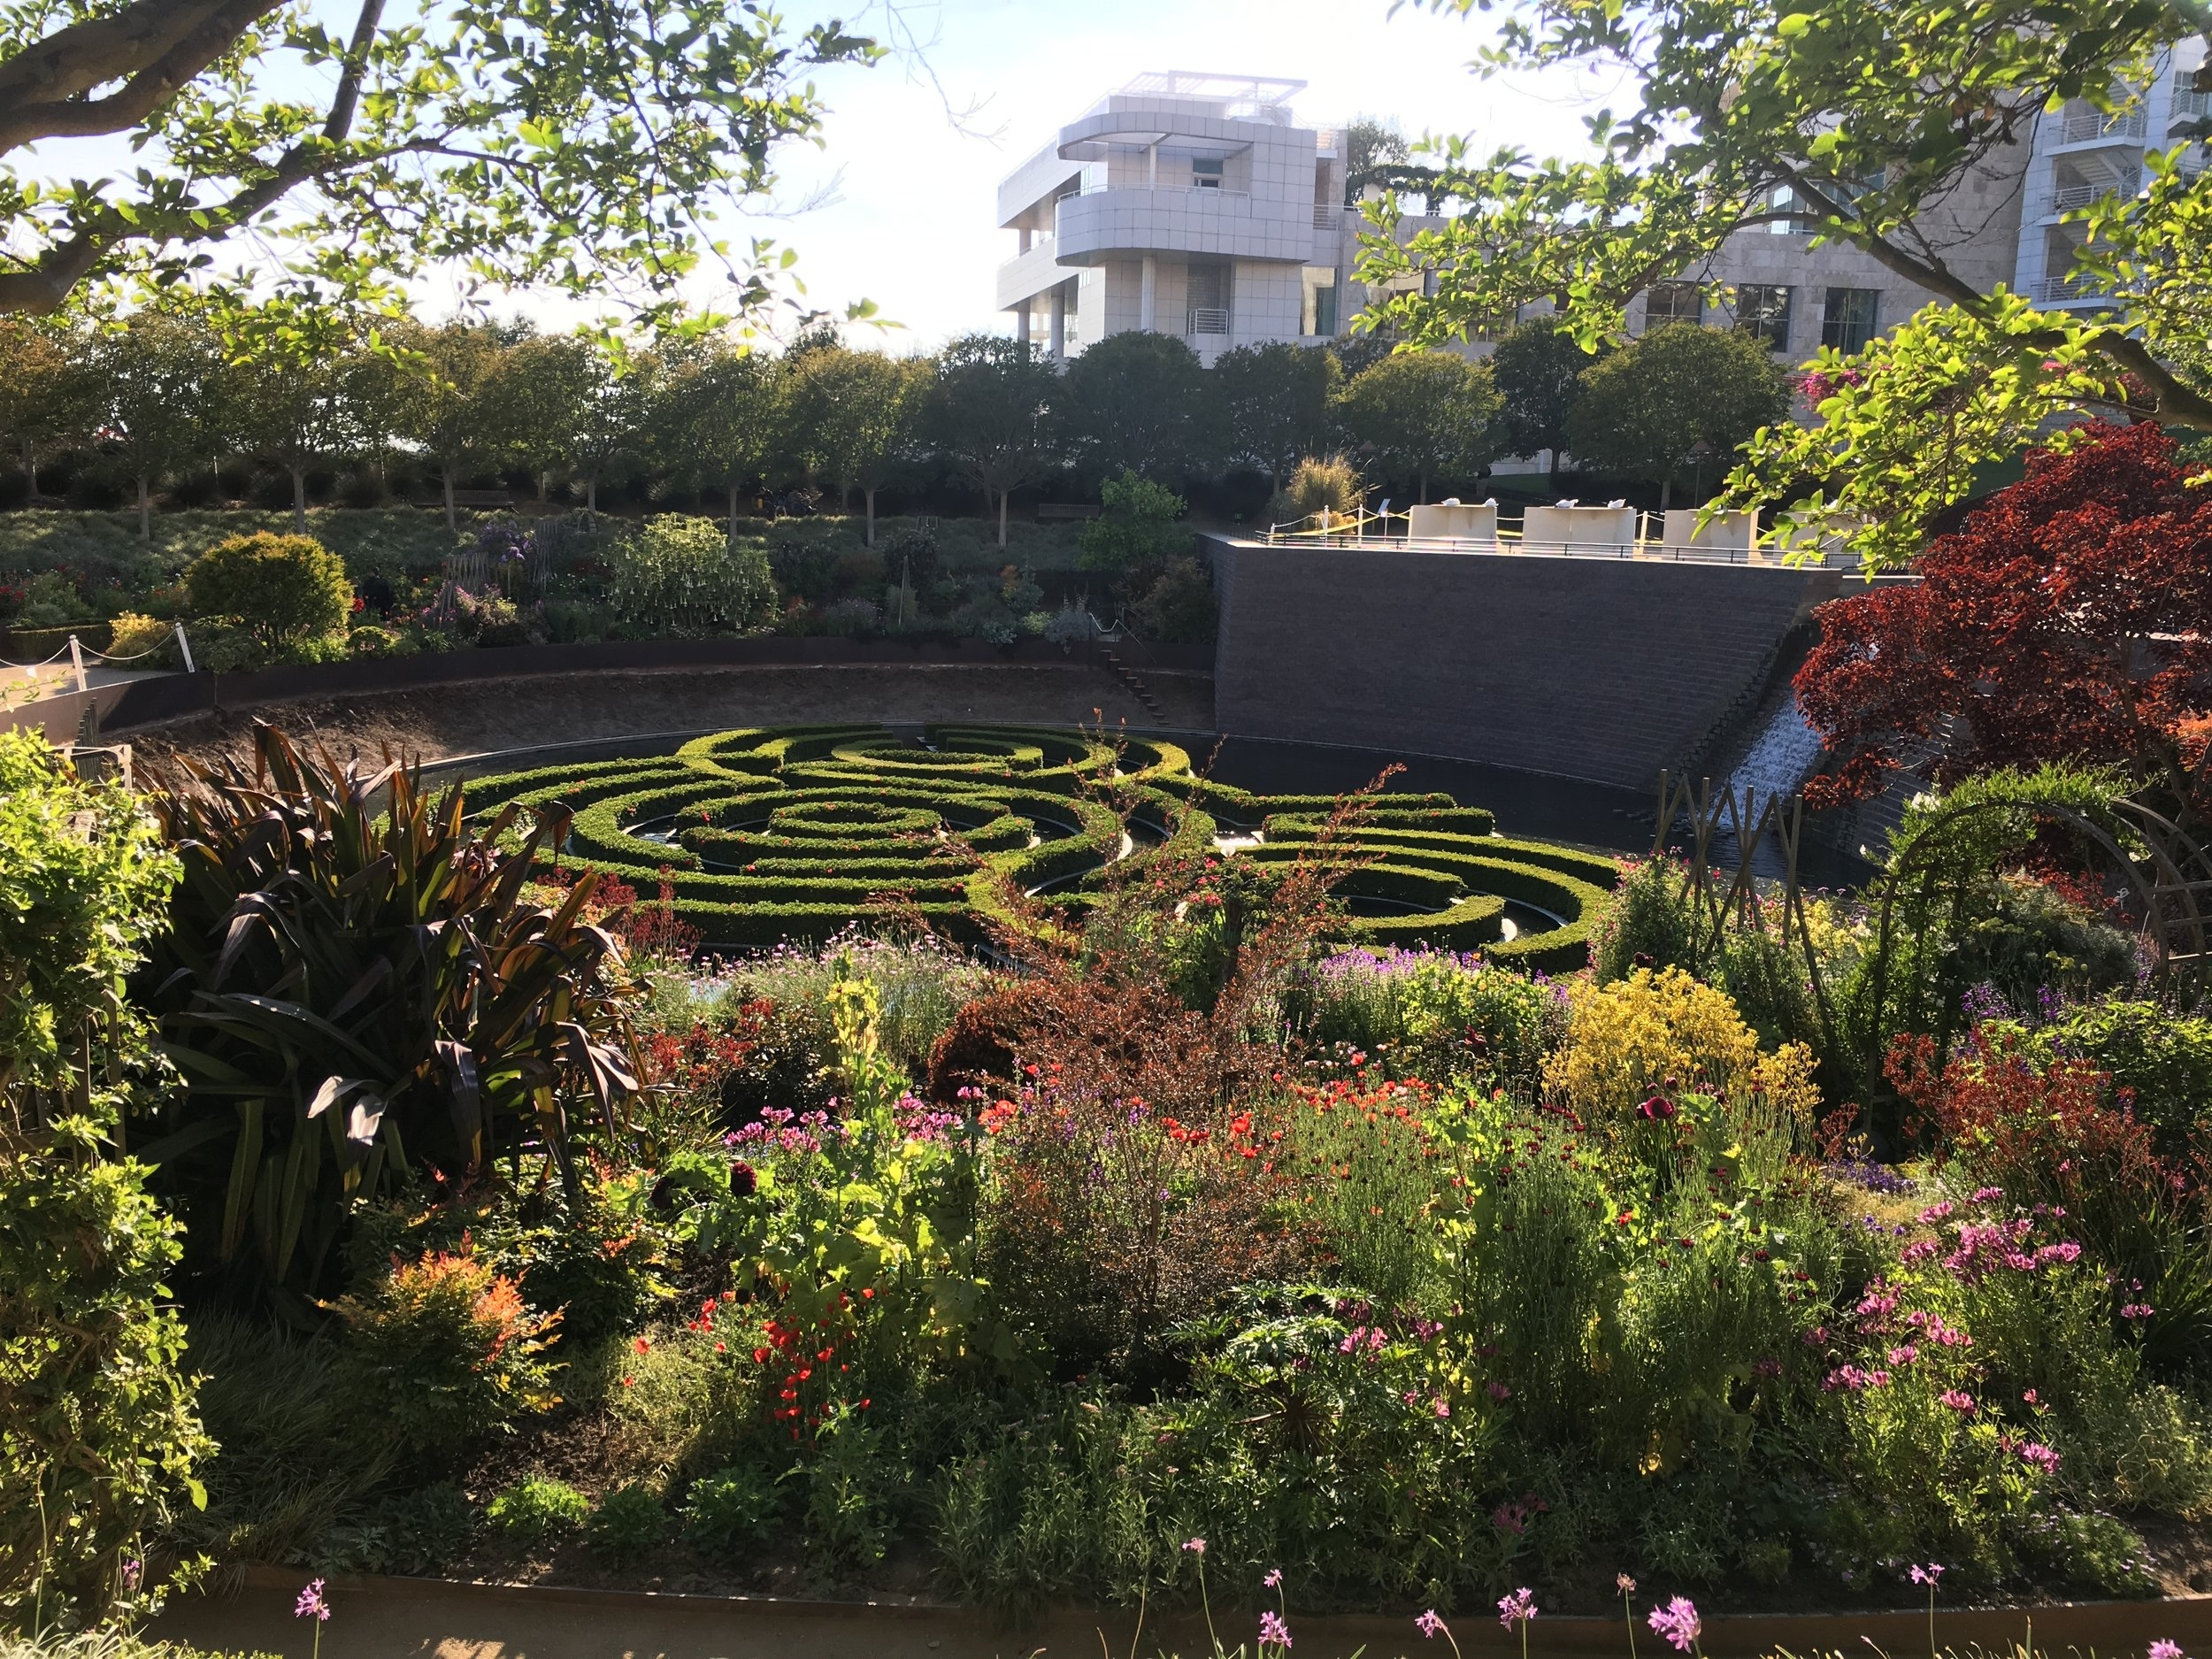 Not pictured in the Getty garden is a little duck who swims throughout the maze.